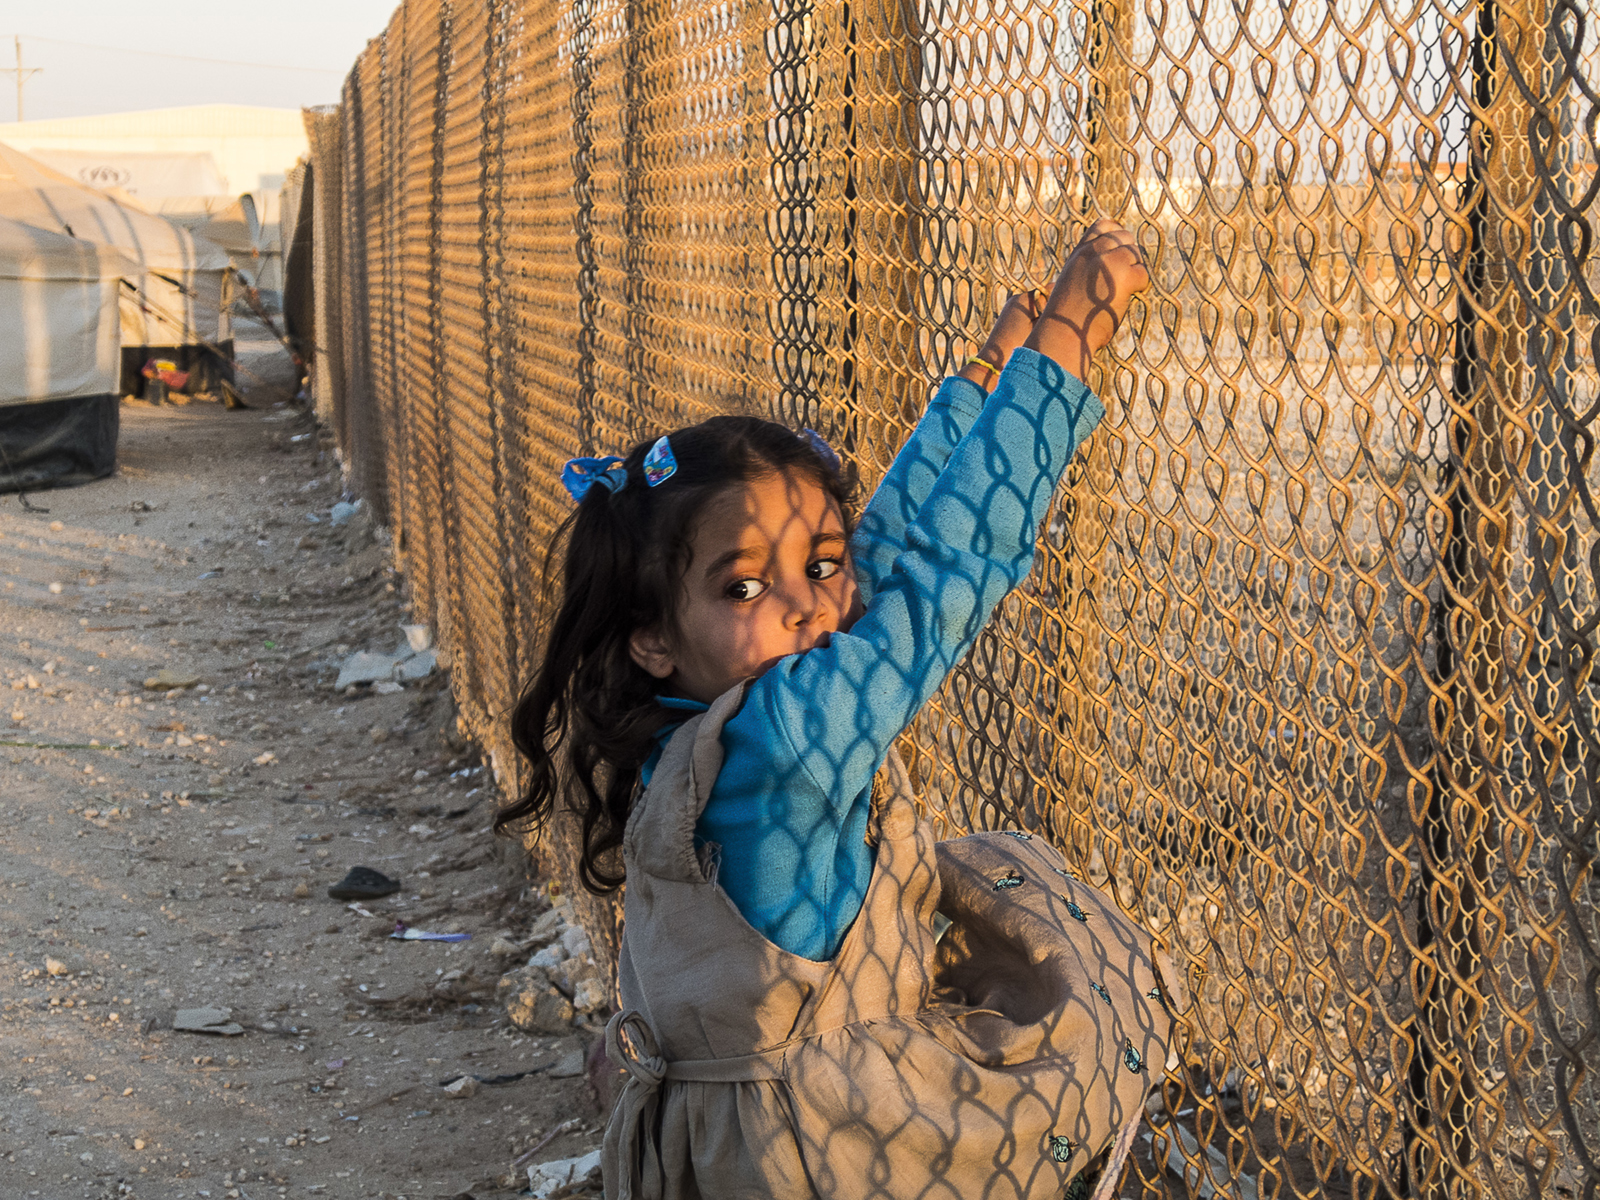 photos-refugee-syria-raghda-1